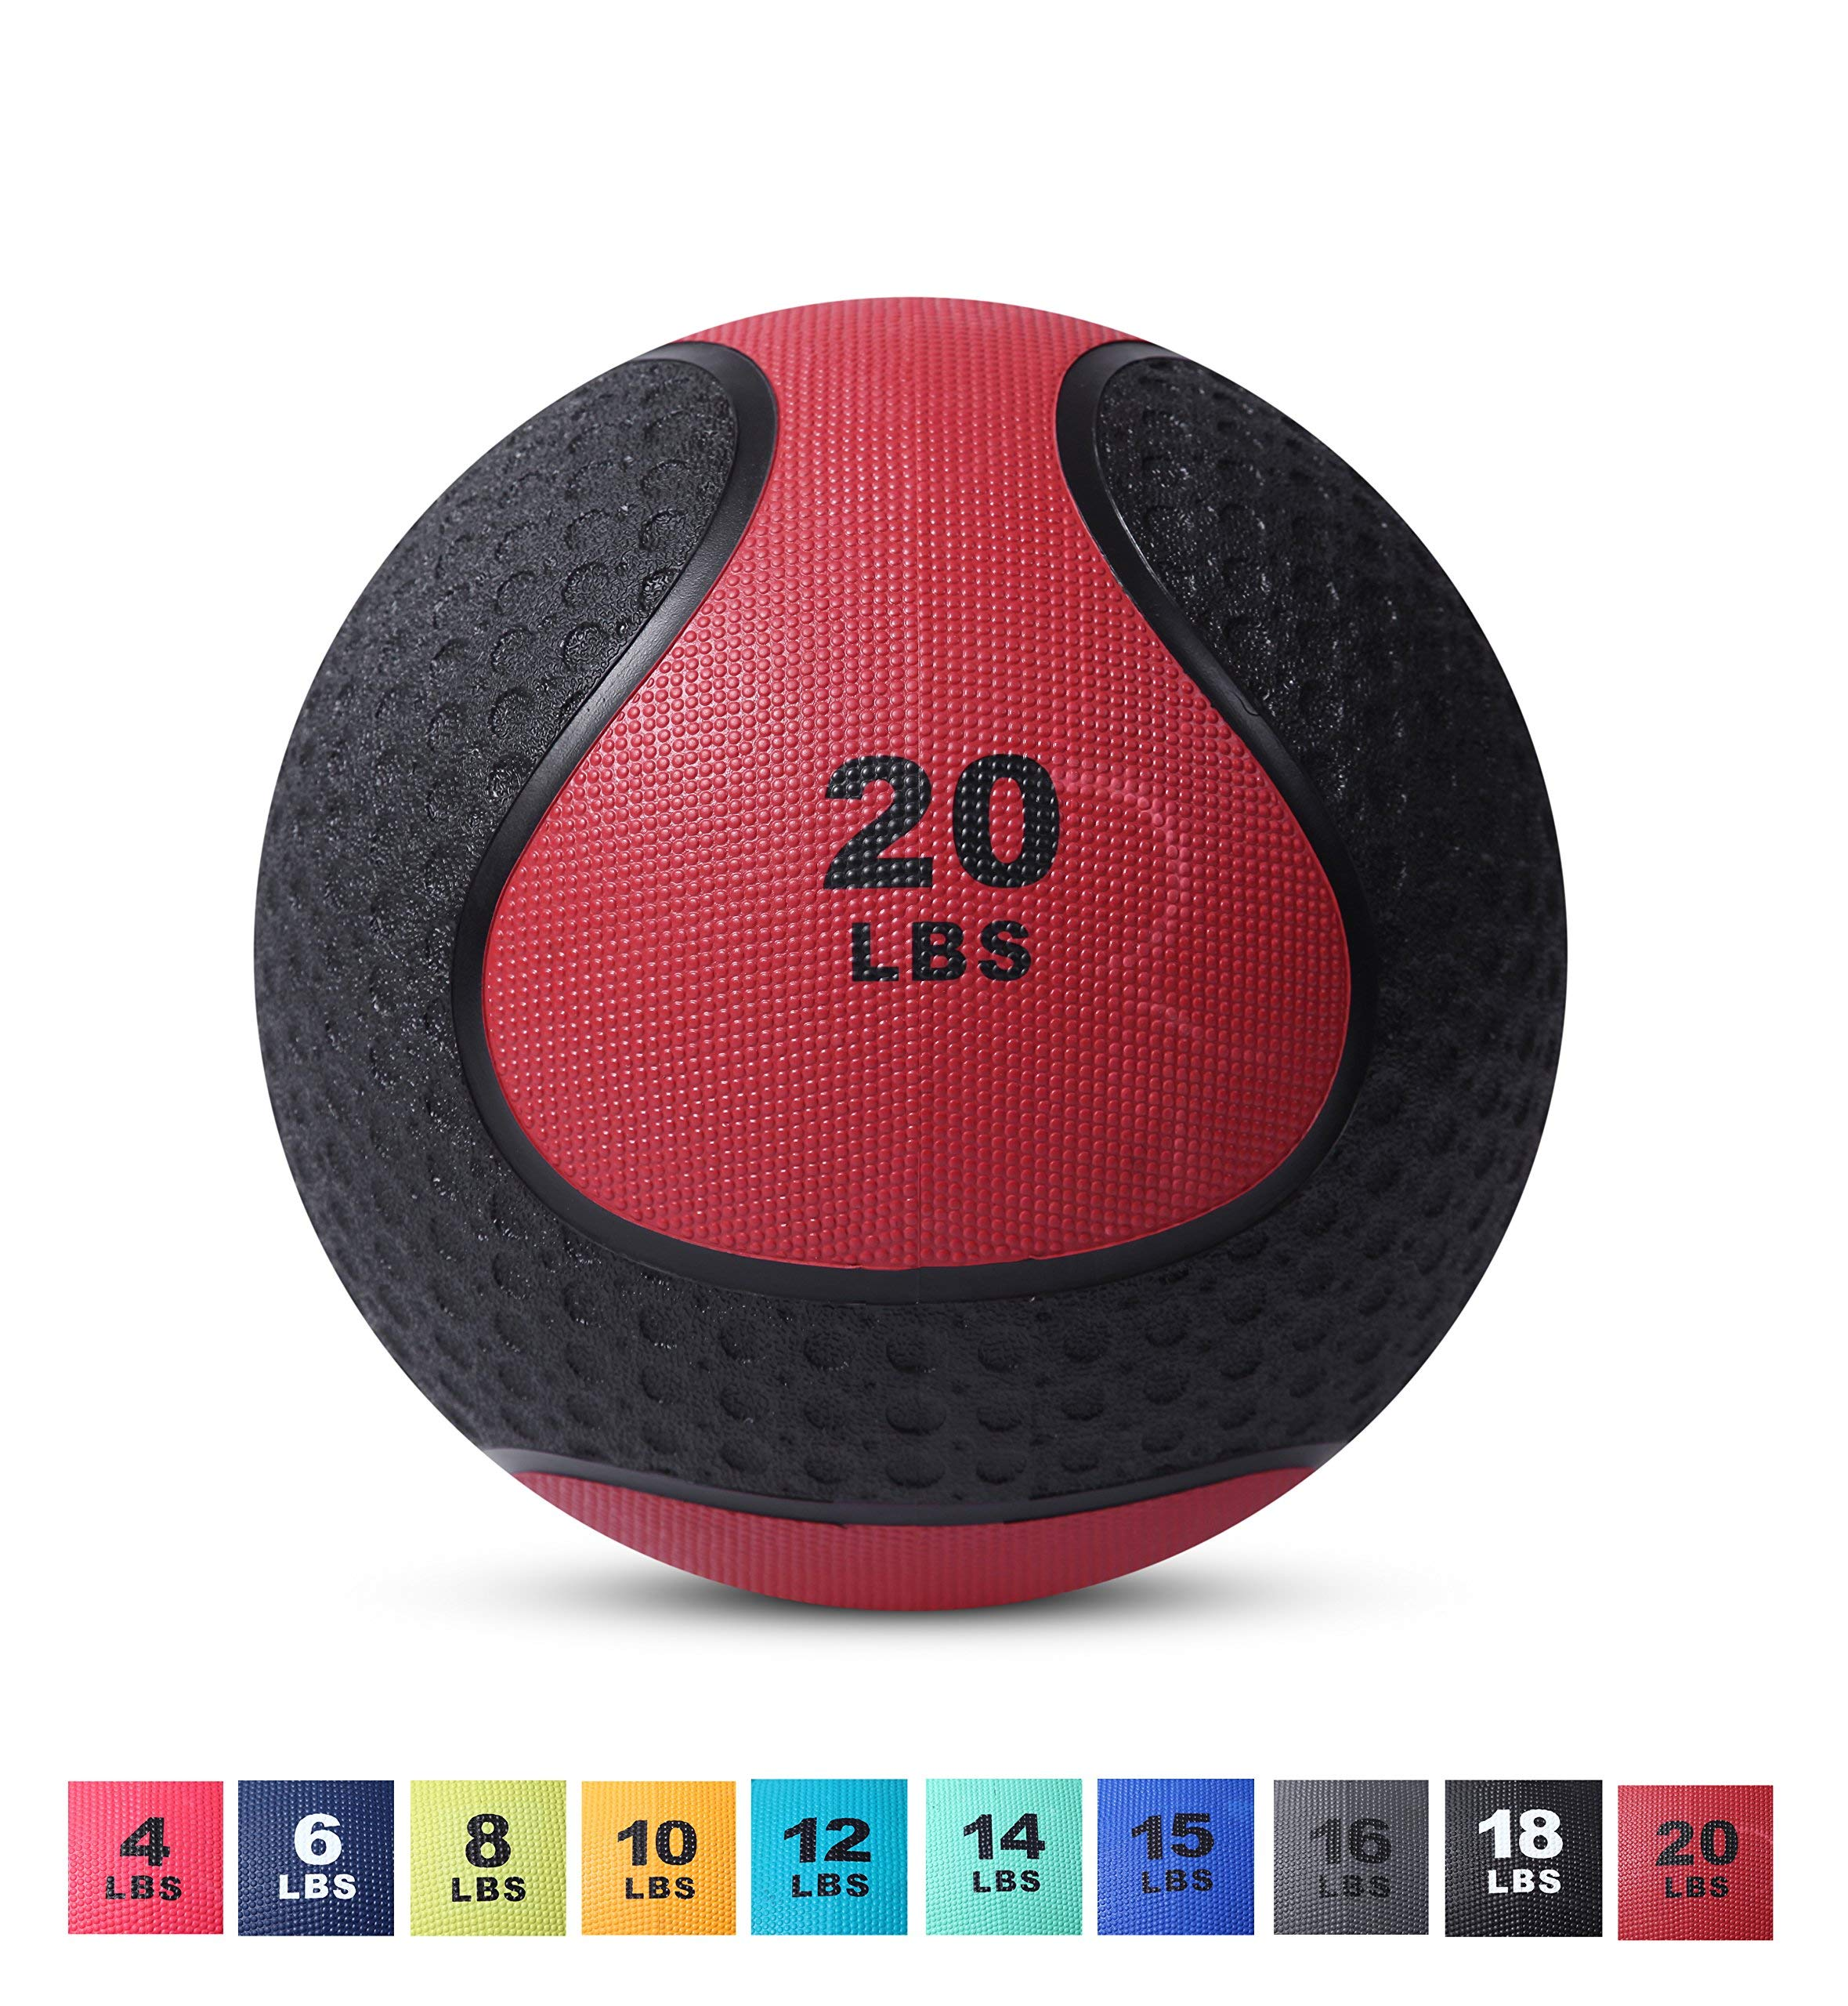 Day 1 Fitness Medicine Exercise Ball with Dual Texture for Superior Grip 20 Pounds - Fitness Balls for Plyometrics, Workouts - Improves Balance, Flexibility, Coordination (Renewed)